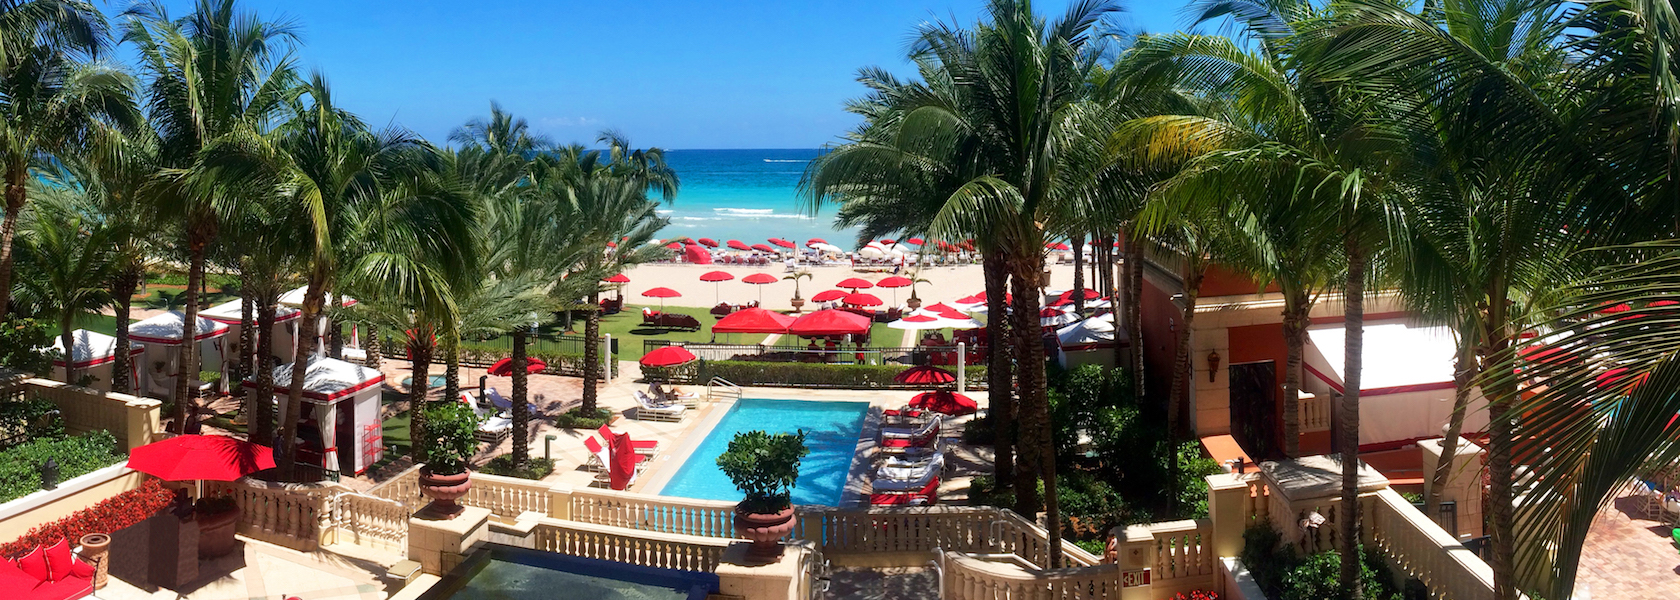 View of the pool at Acqualina next to the Ocean